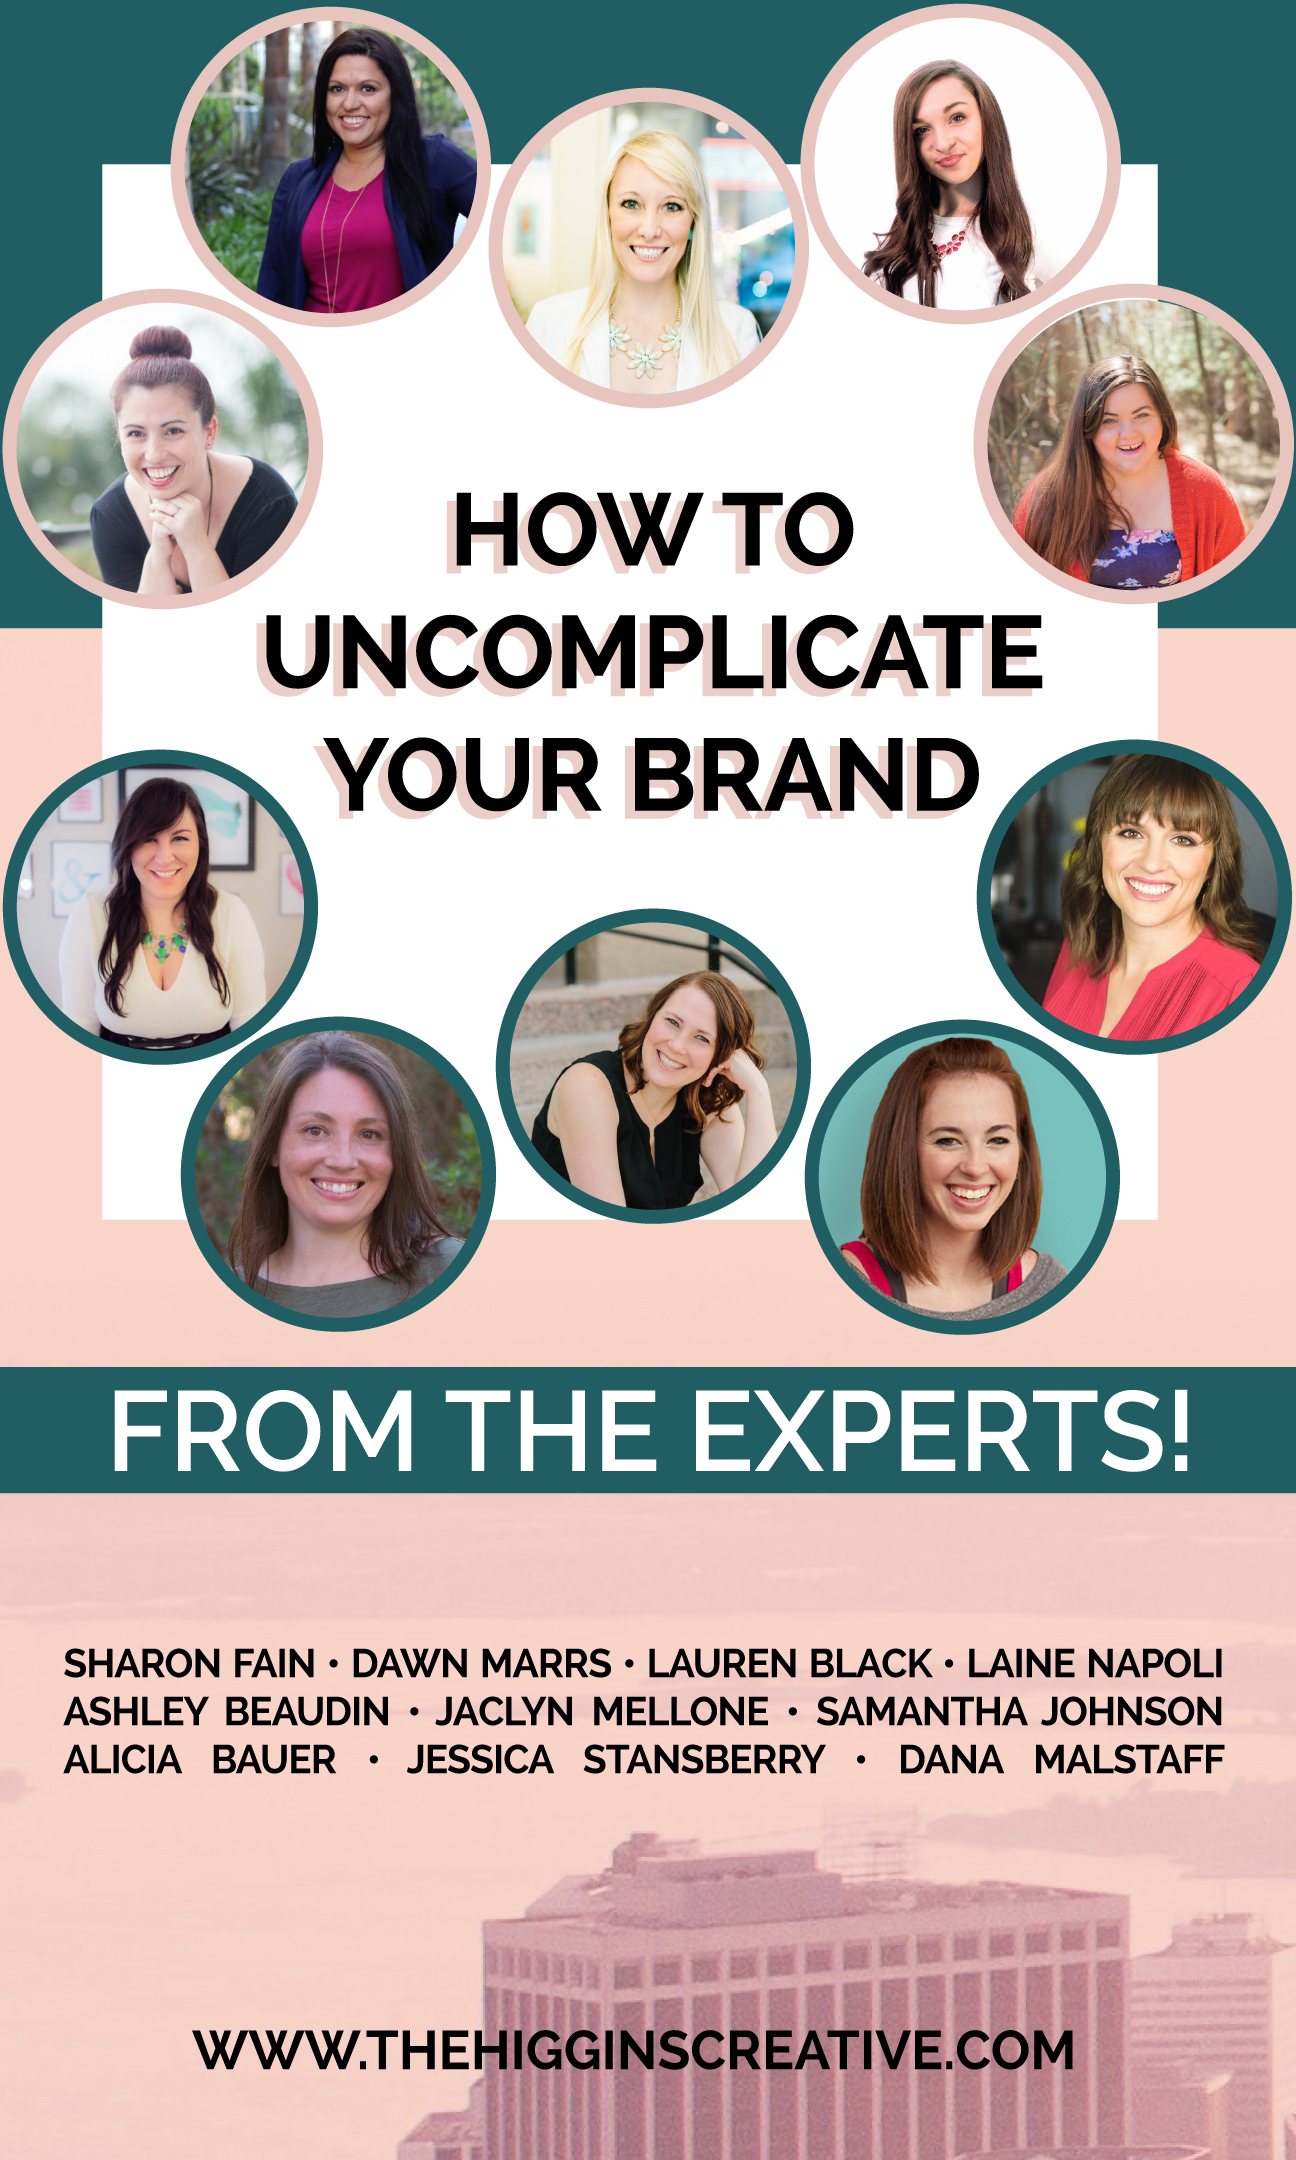 How to uncomplicate your brand on The Higgins Creative Journal featuring experts in their industries. Find out how to simplify your brand and get the best visuals by clicking the link.